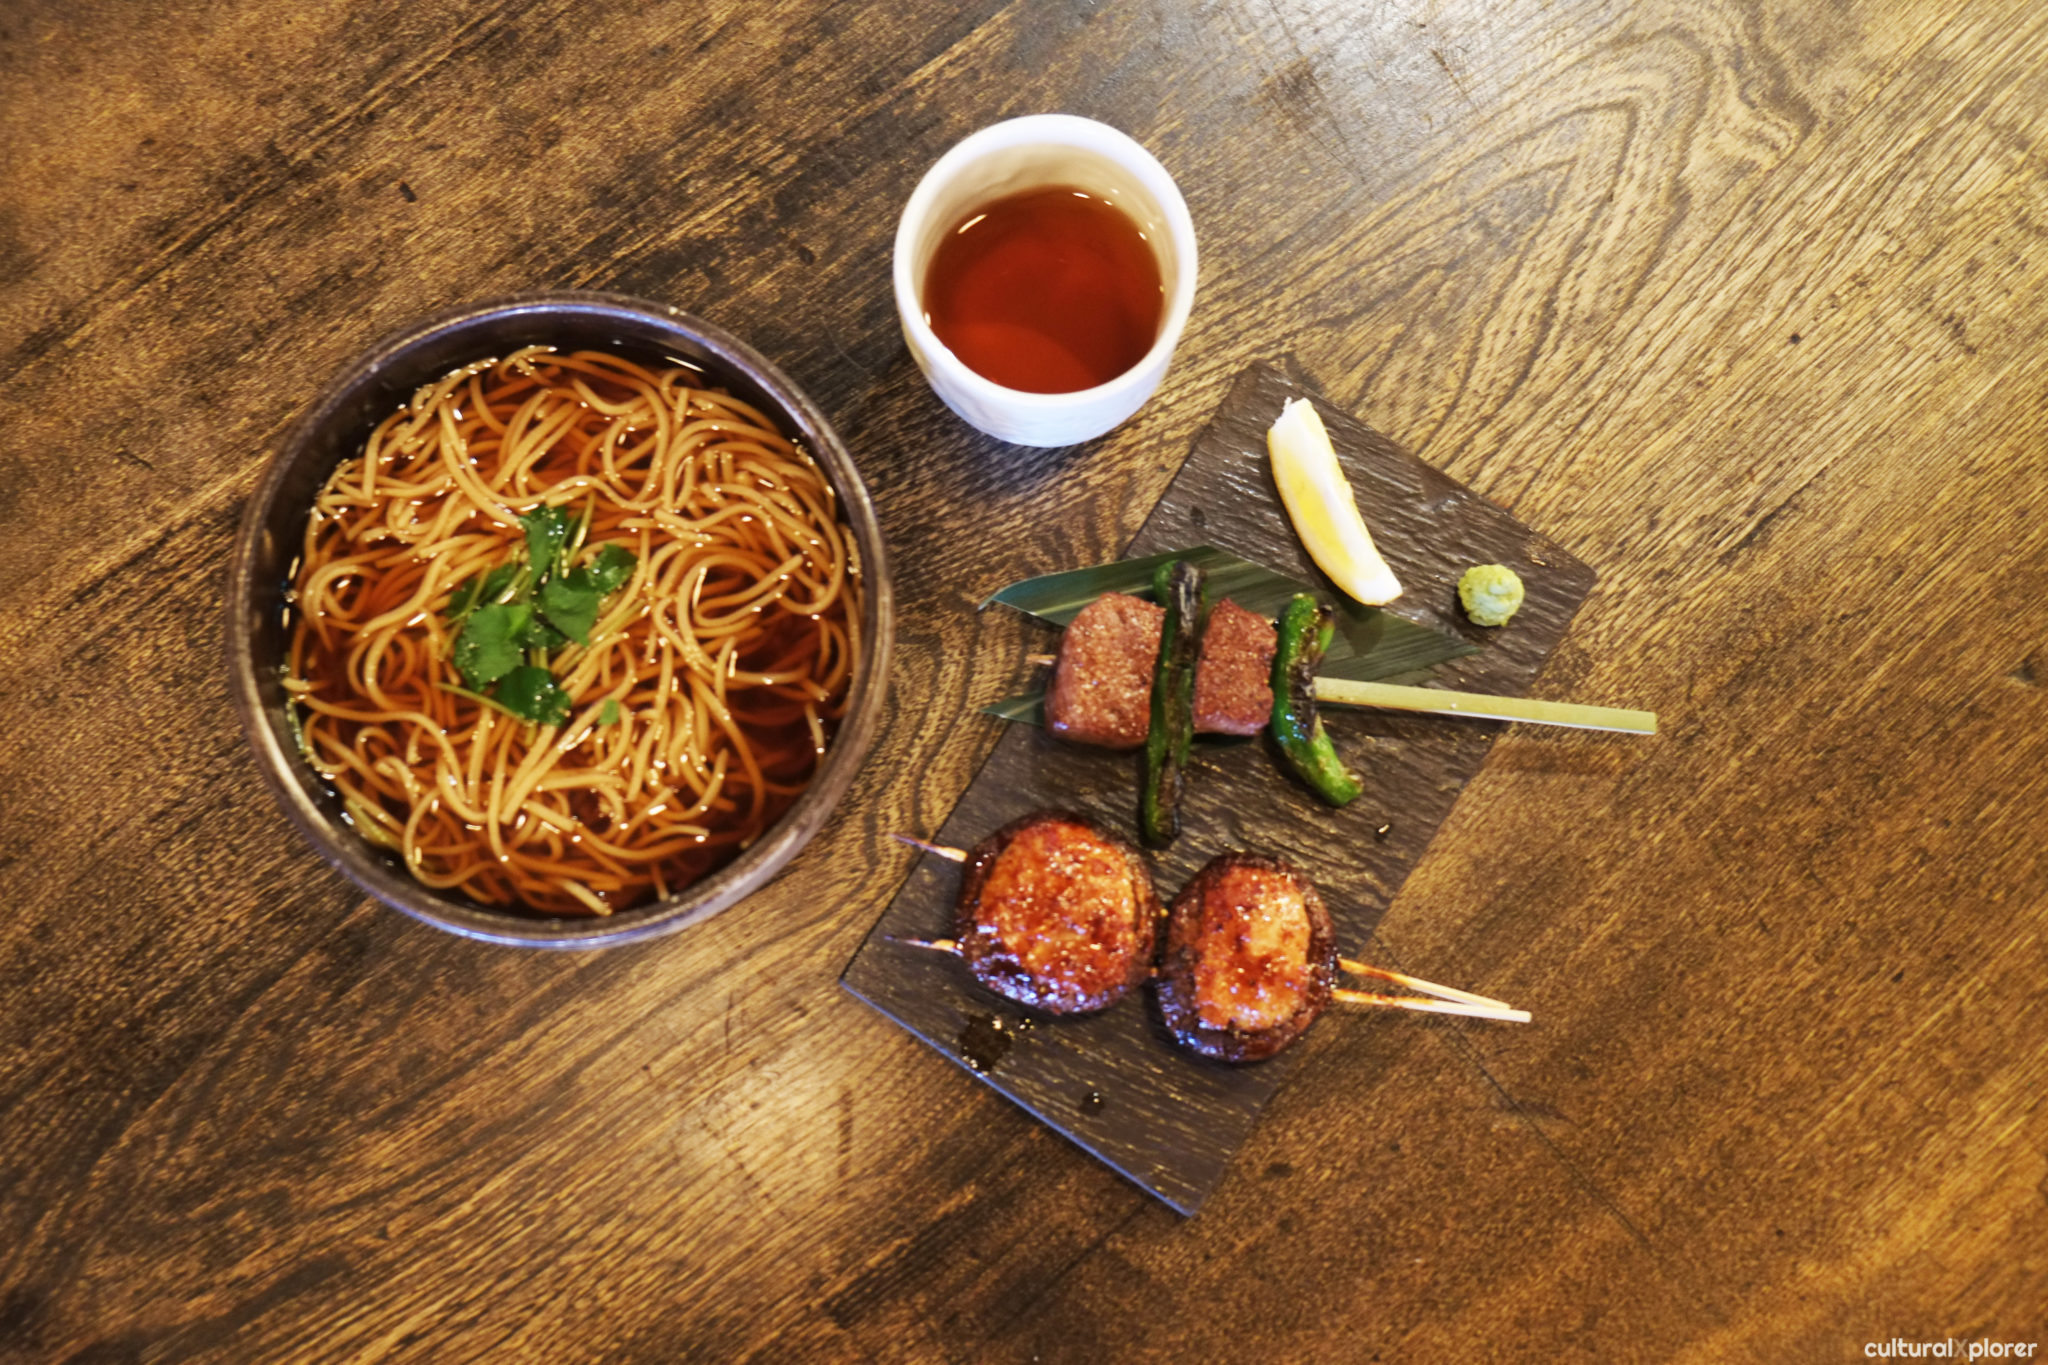 11 Japanese Foods You Should Try During A Visit To Japan